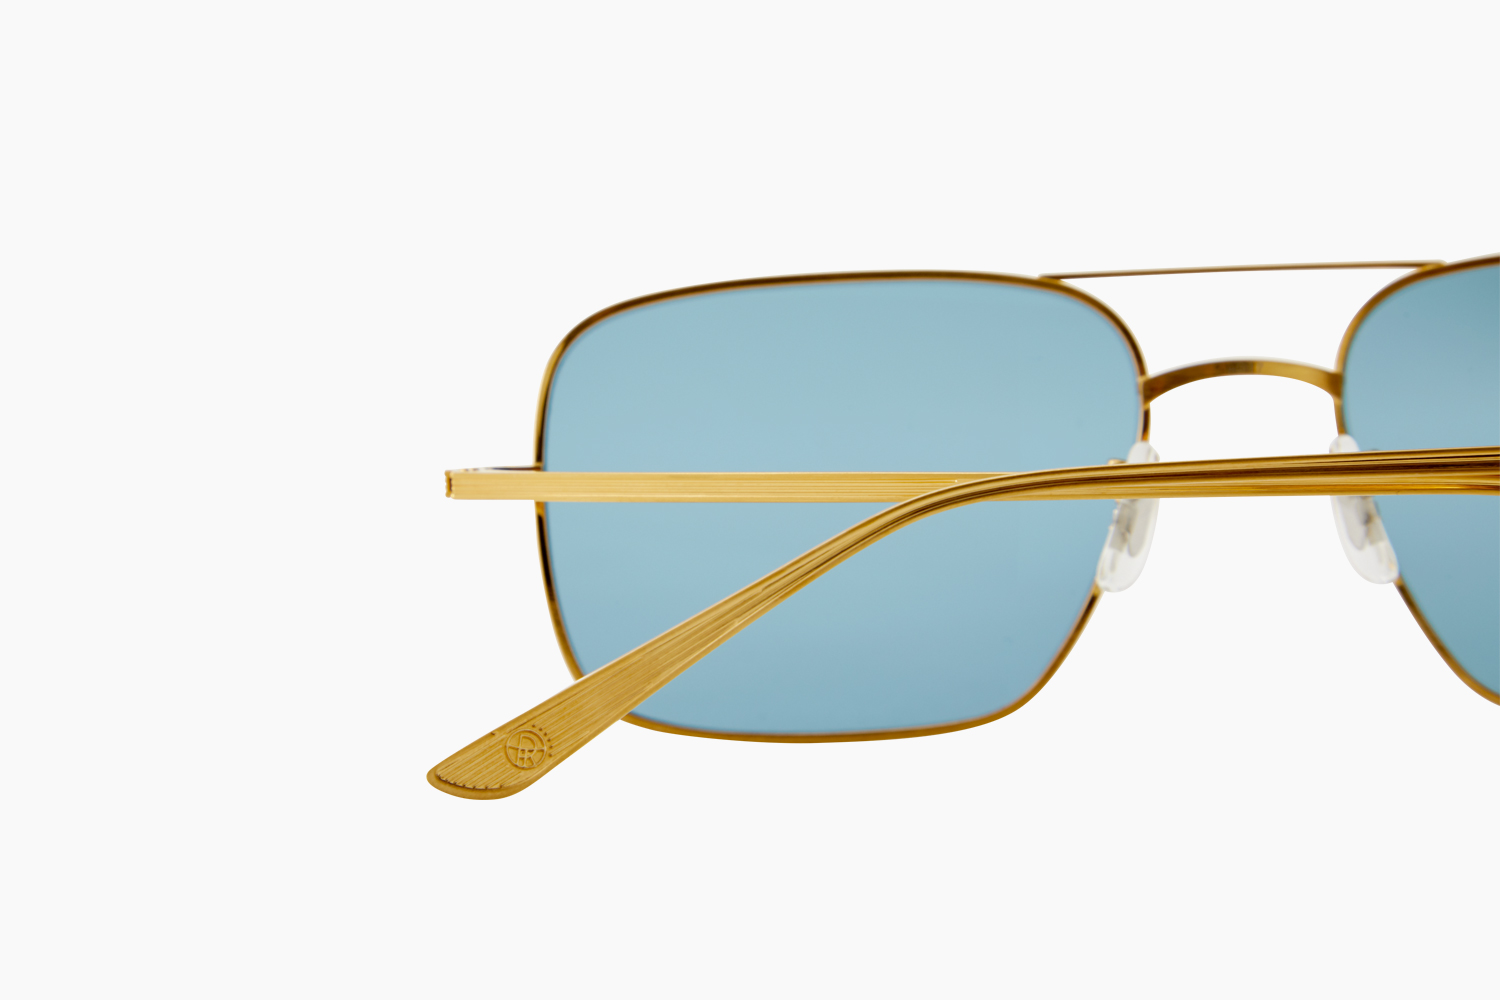 OLIVER PEOPLES THE ROWVICTORY LA - 5293P1|OLIVER PEOPLES